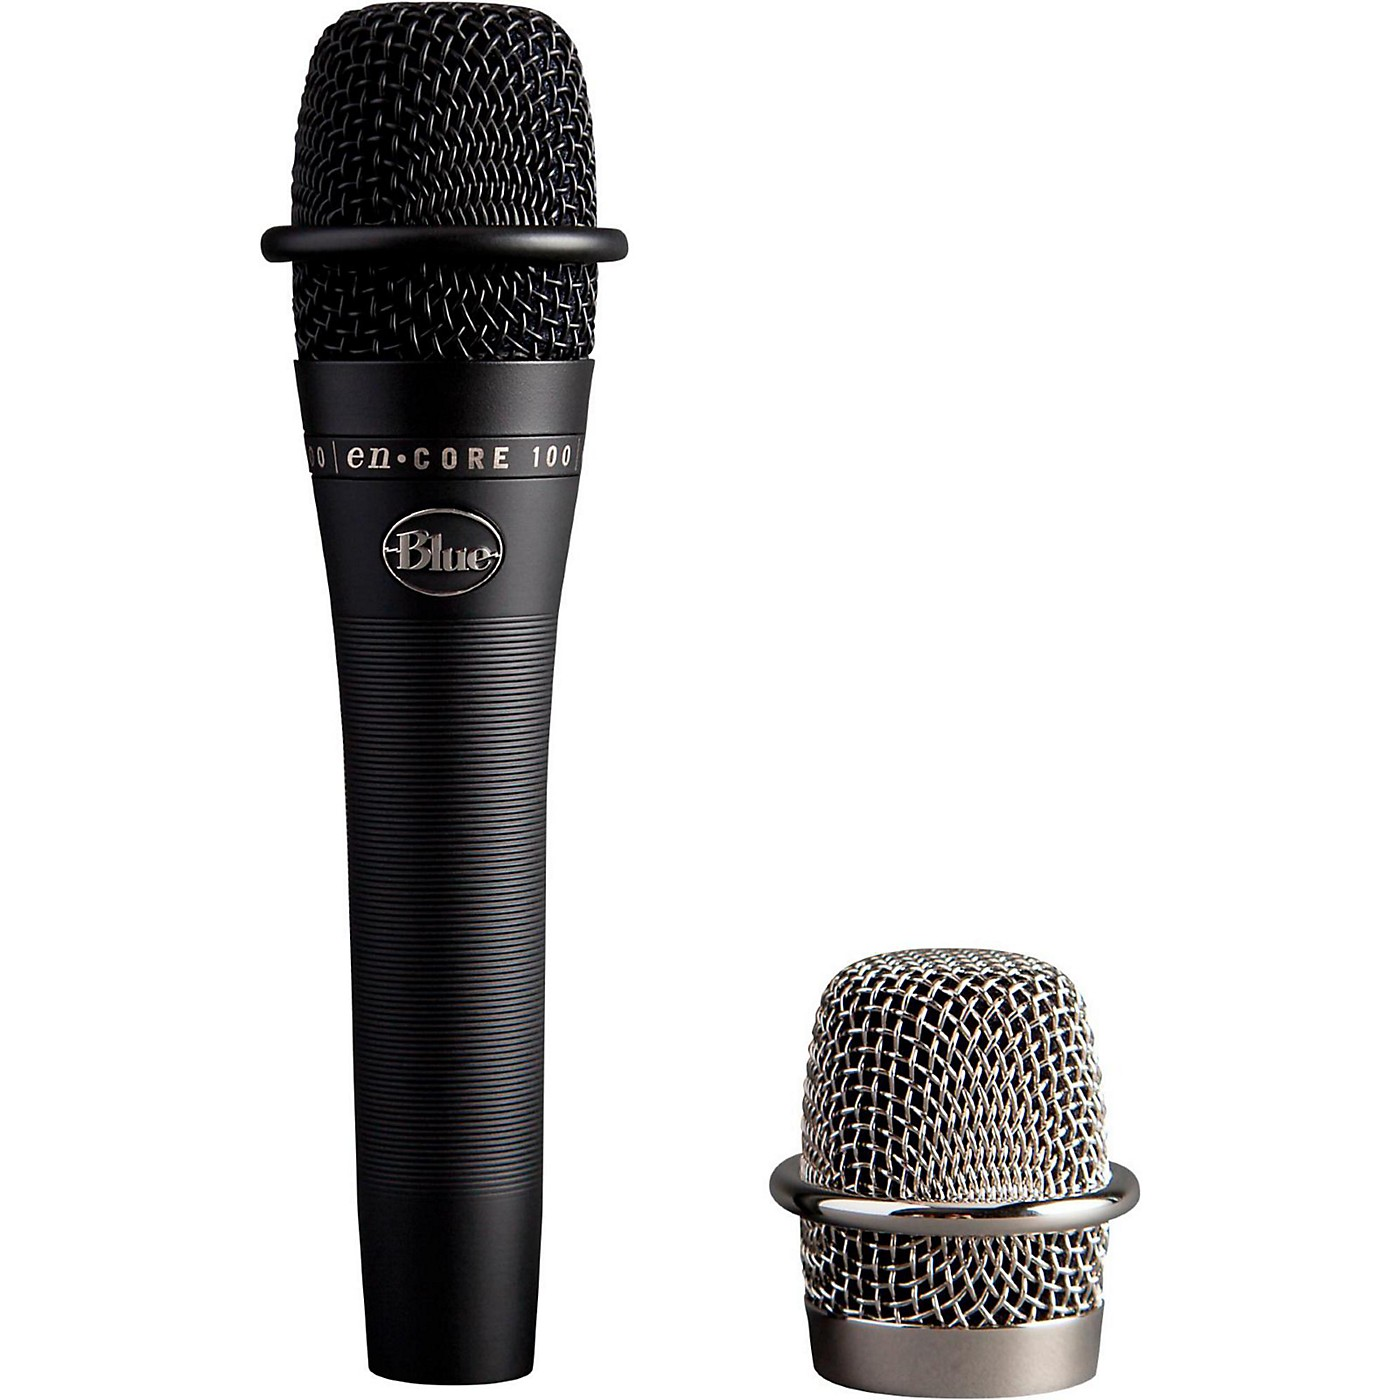 BLUE enCORE 100 Studio Grade Dynamic Microphone thumbnail